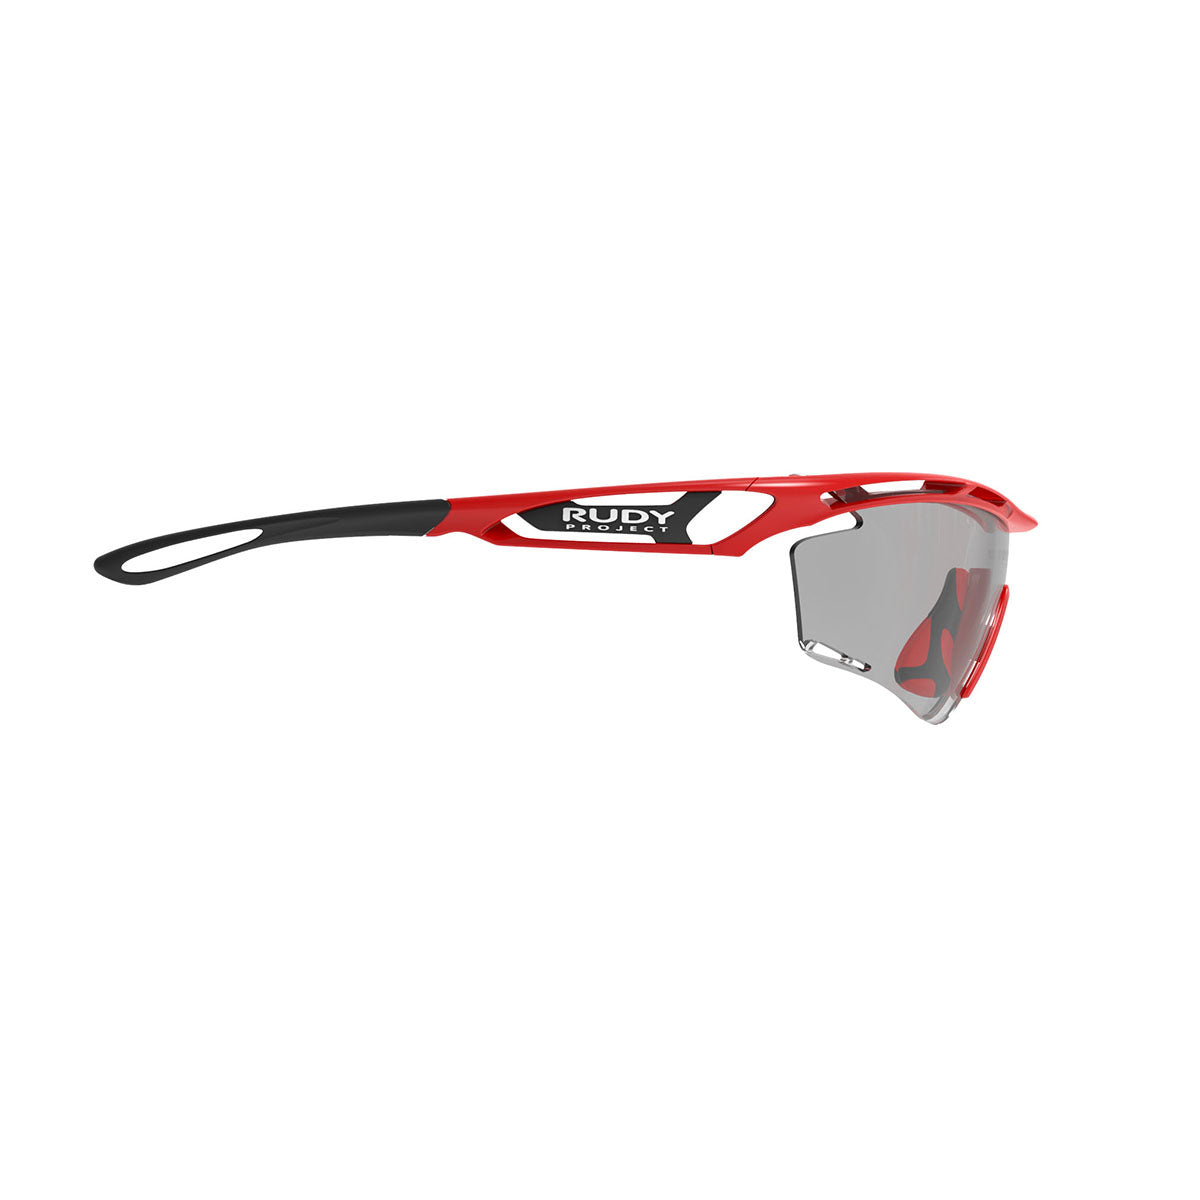 Rudy Project - Tralyx - frame color: Fire Red Gloss - lens color: ImpactX-2 Photochromic Clear to Black - photo angle: Side Variant Hover Image